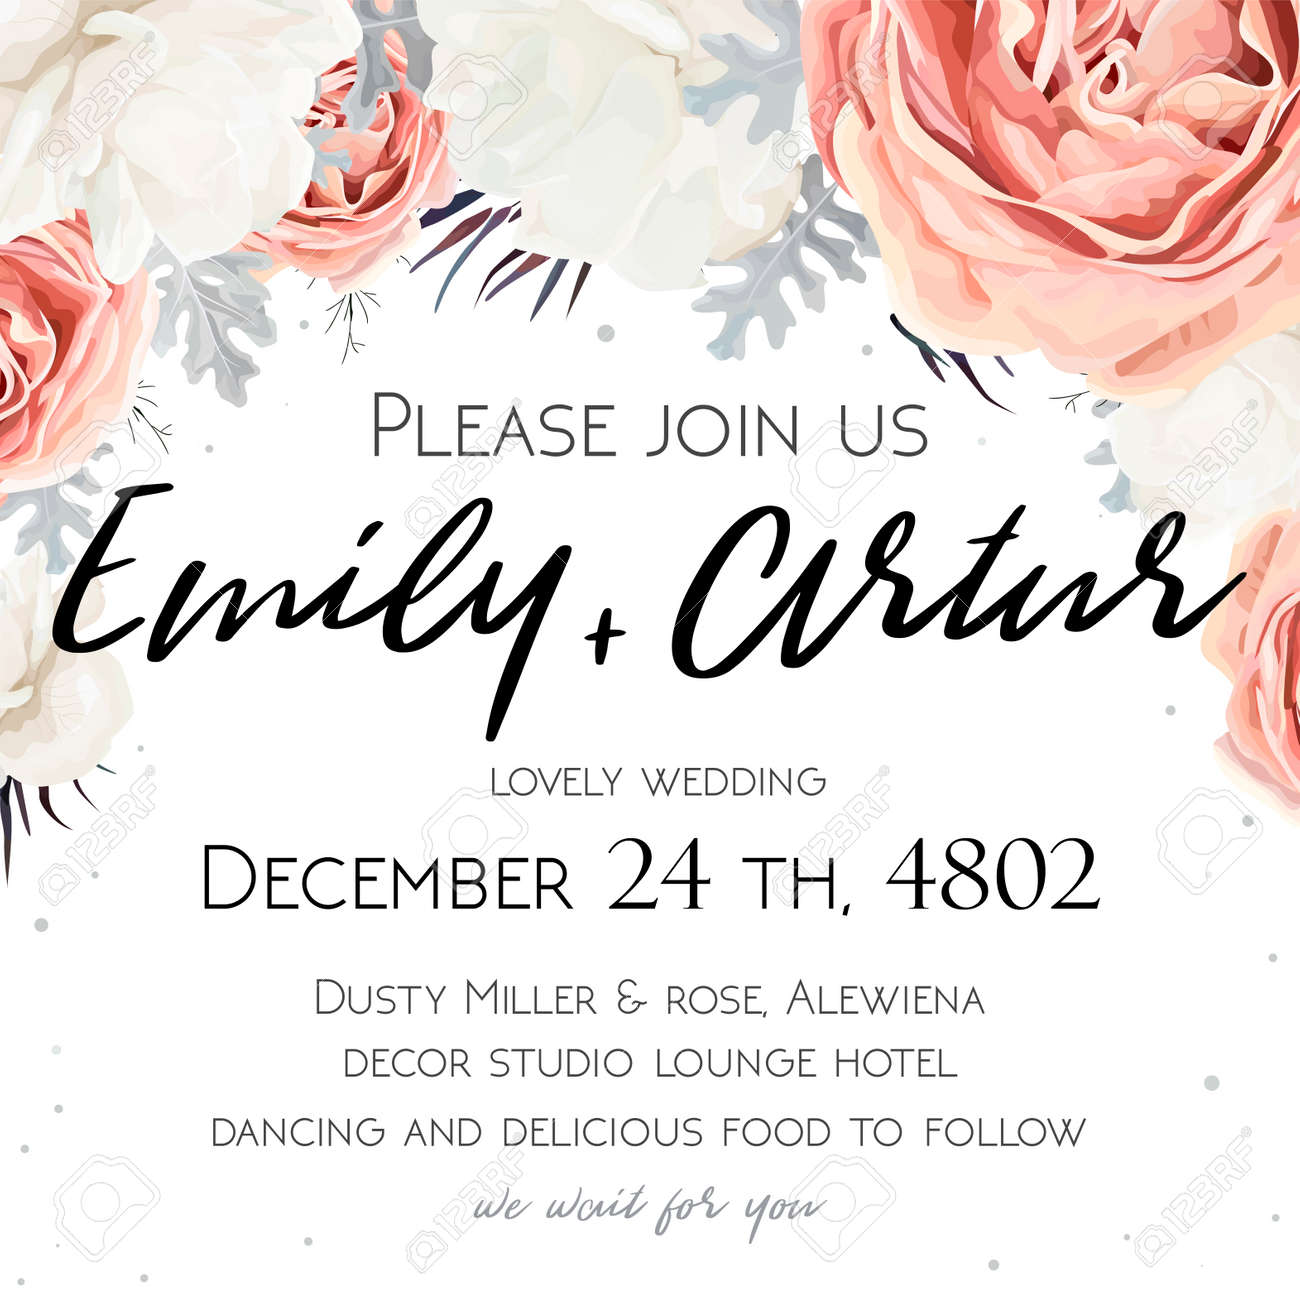 floral wedding invitation invite save the date card design